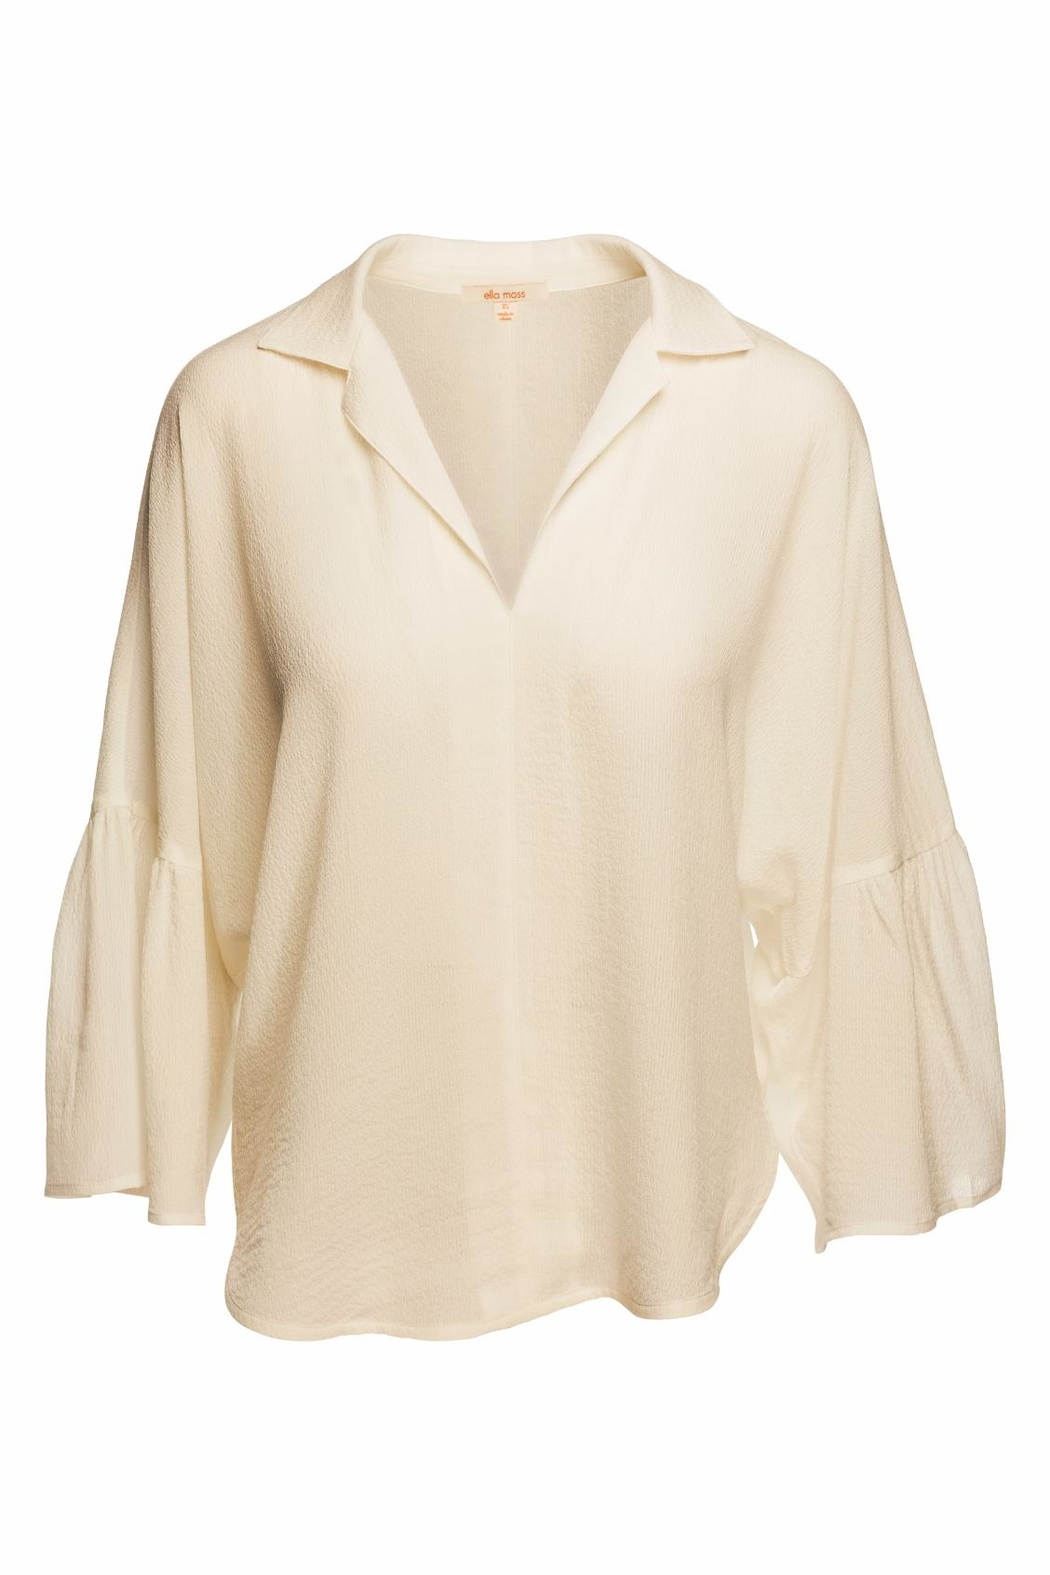 Ella Moss Natural Oversize Top - Front Cropped Image